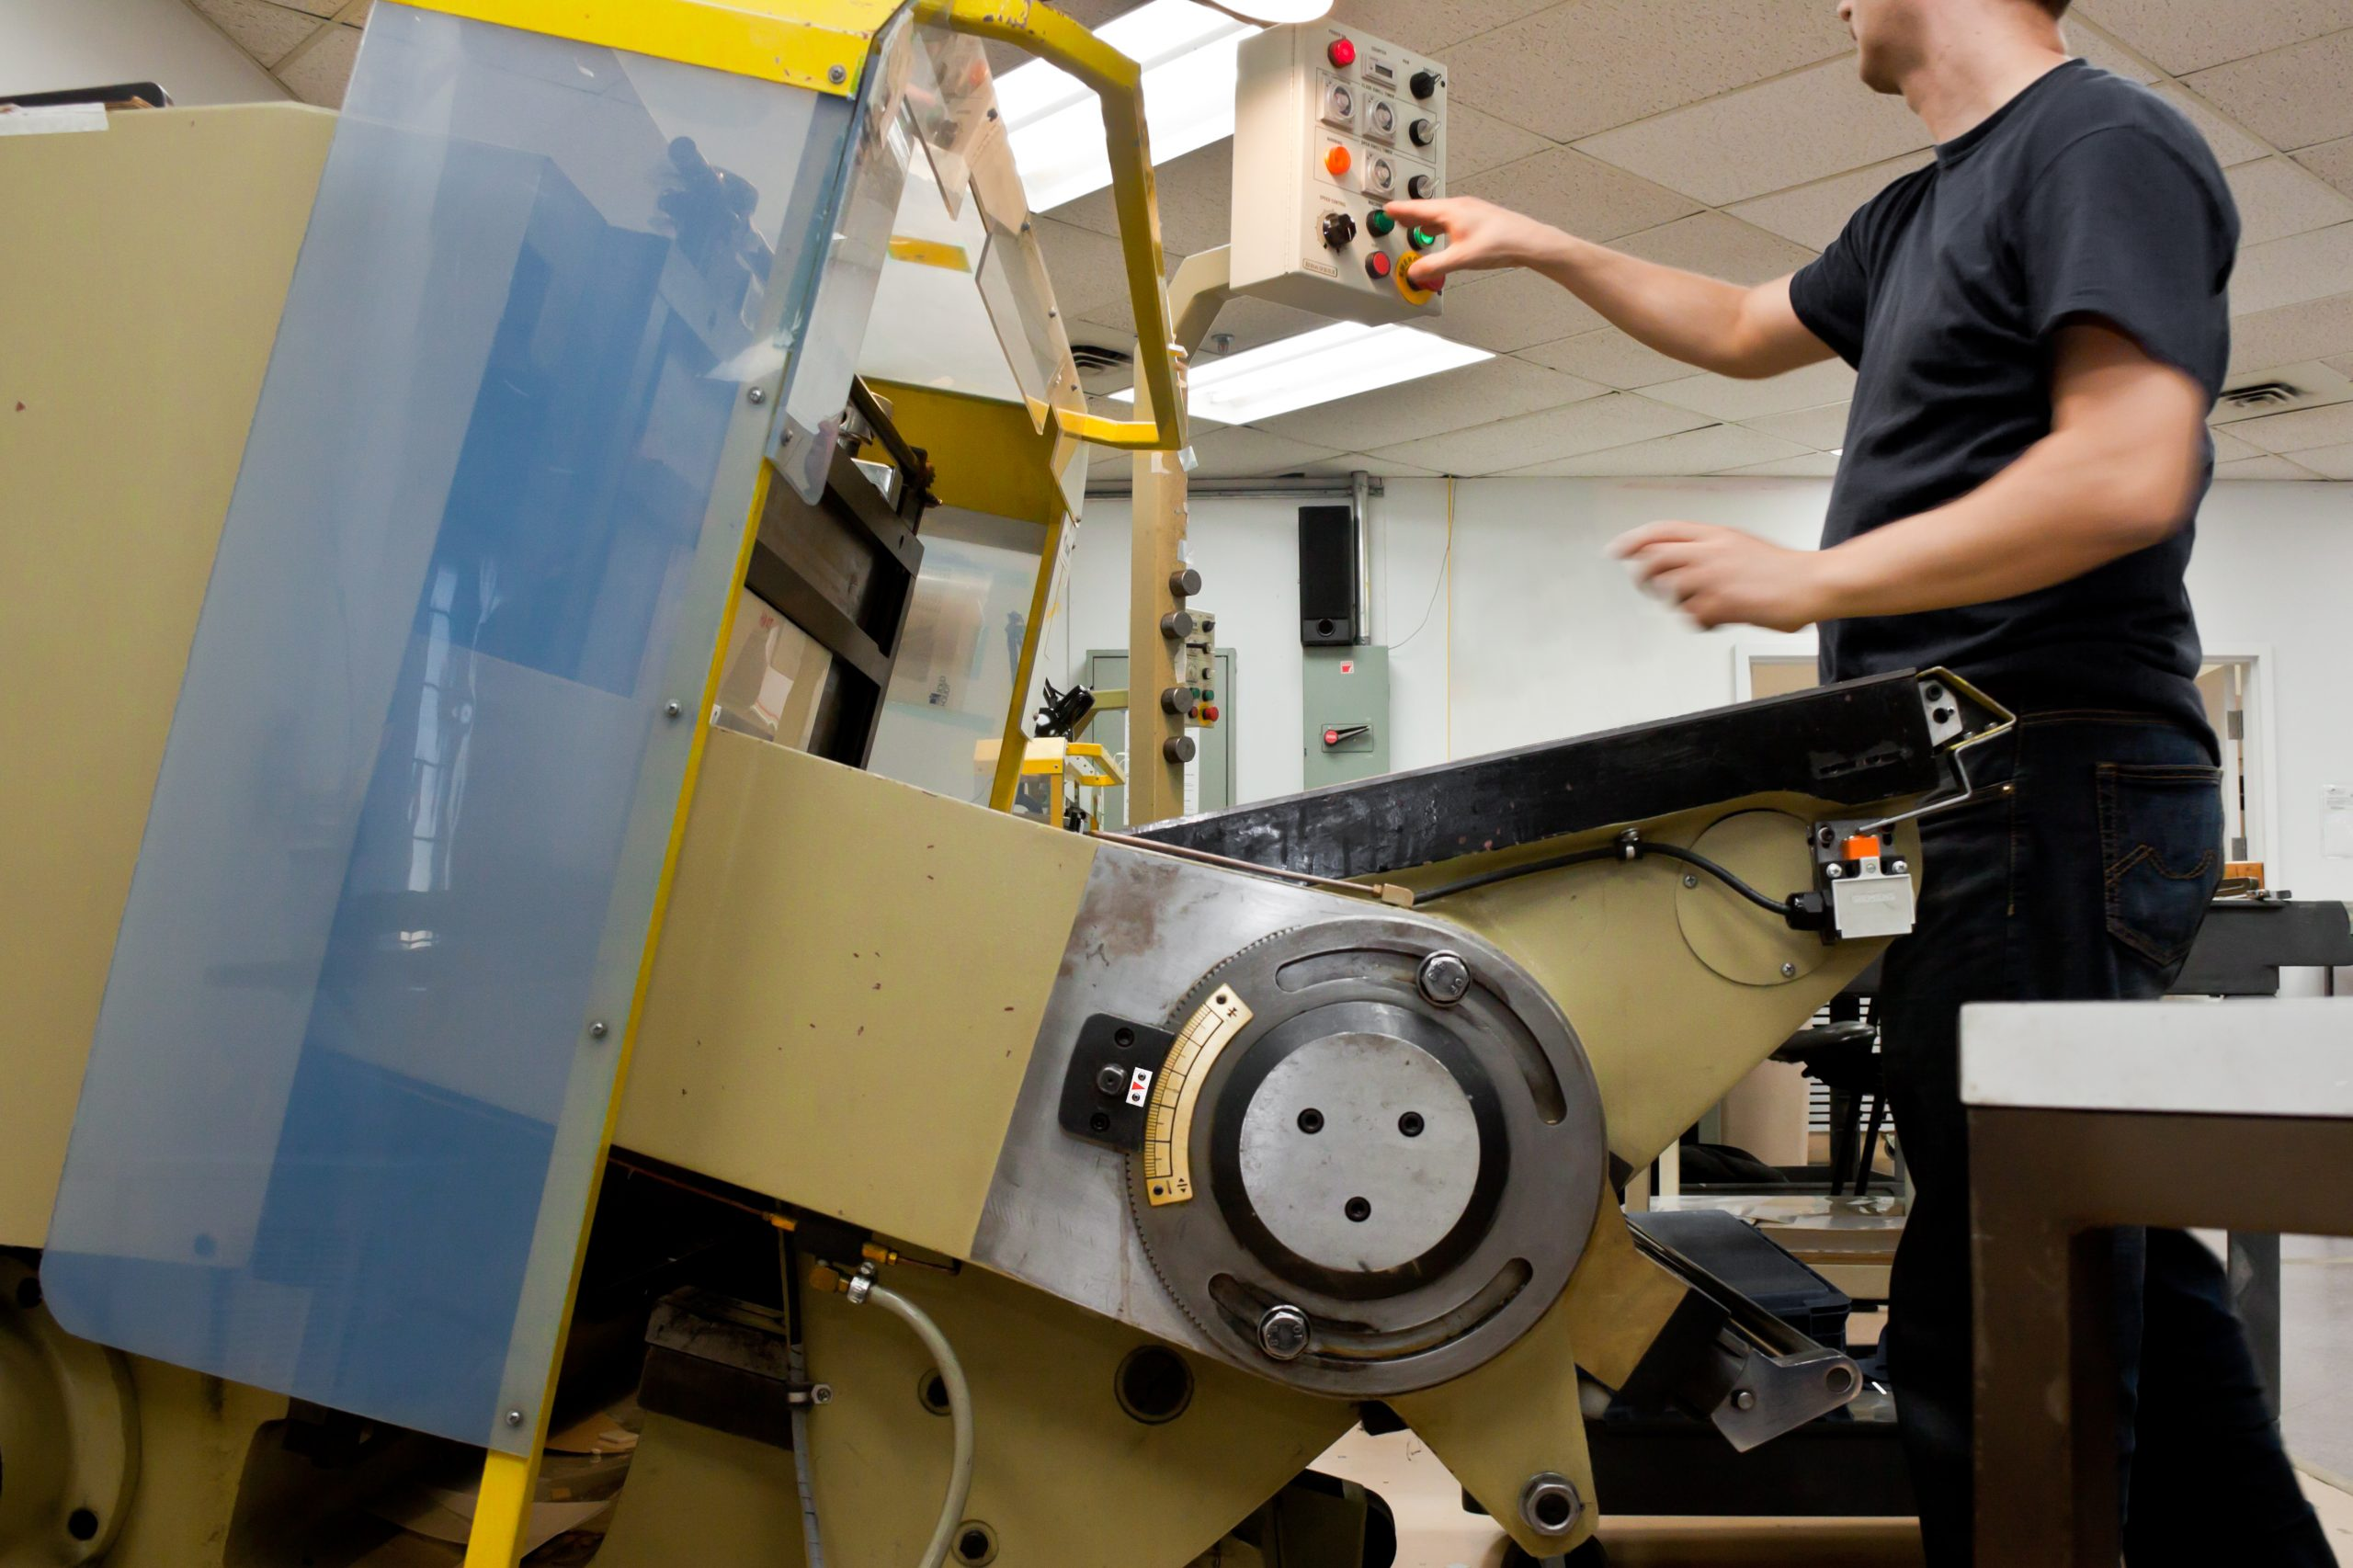 Die cut: machine and operator in a industrial environment